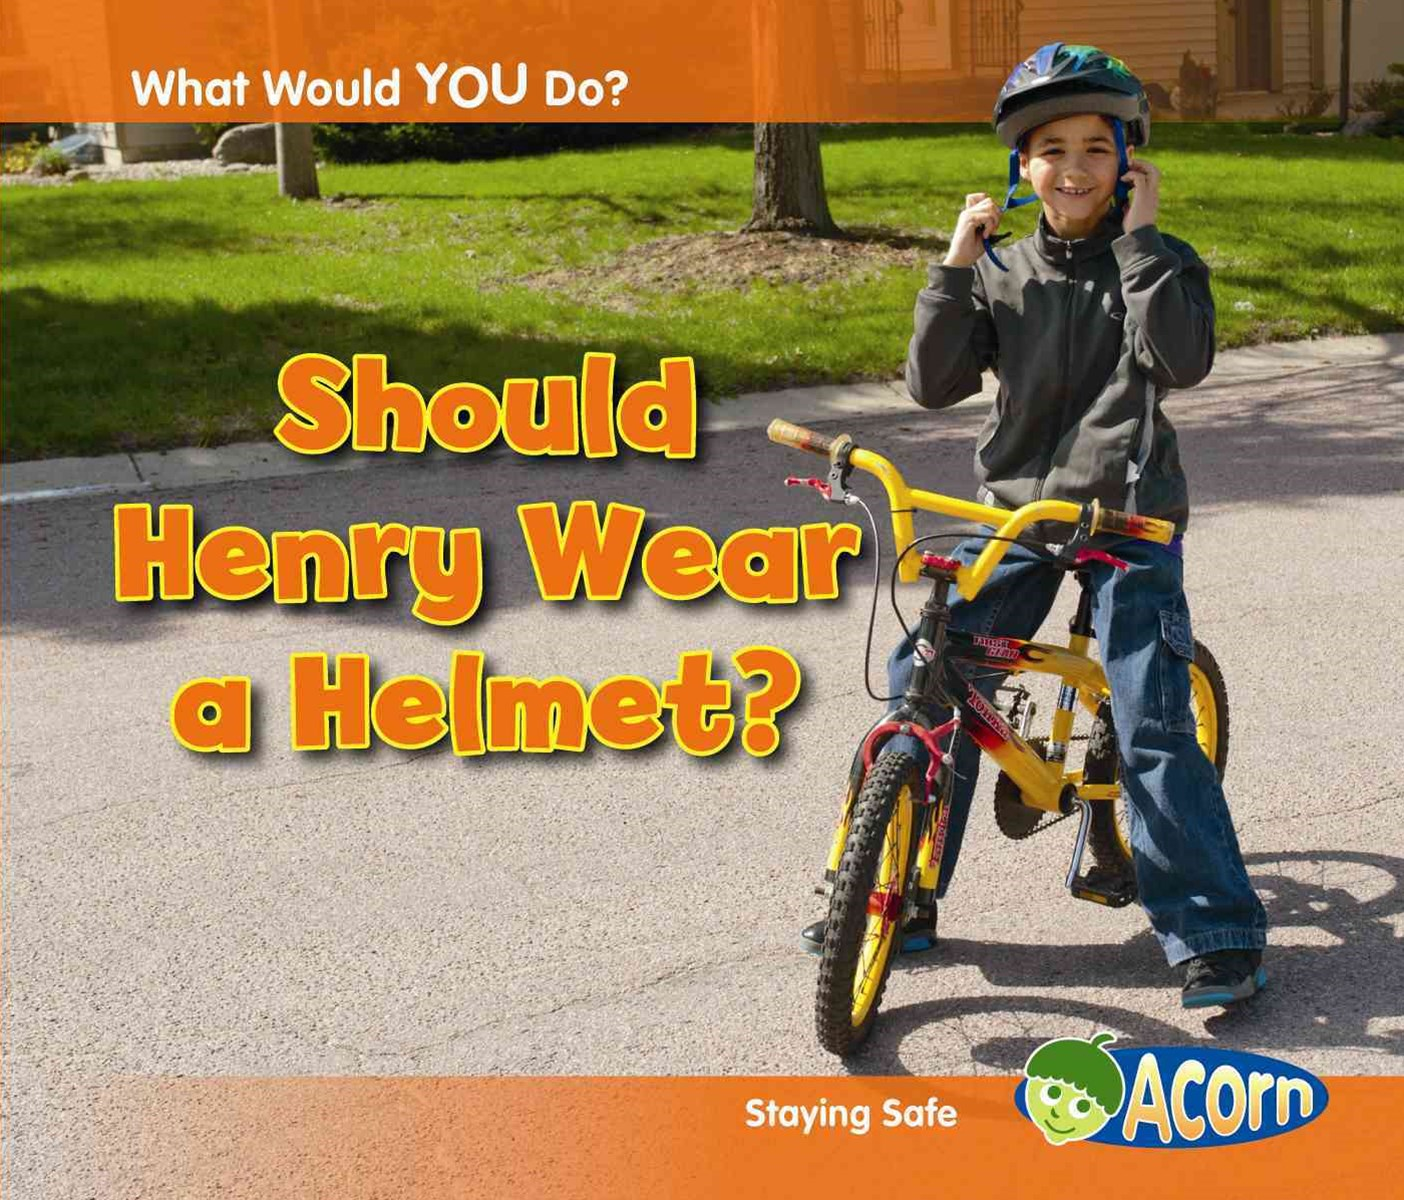 Should Henry Wear a Helmet?